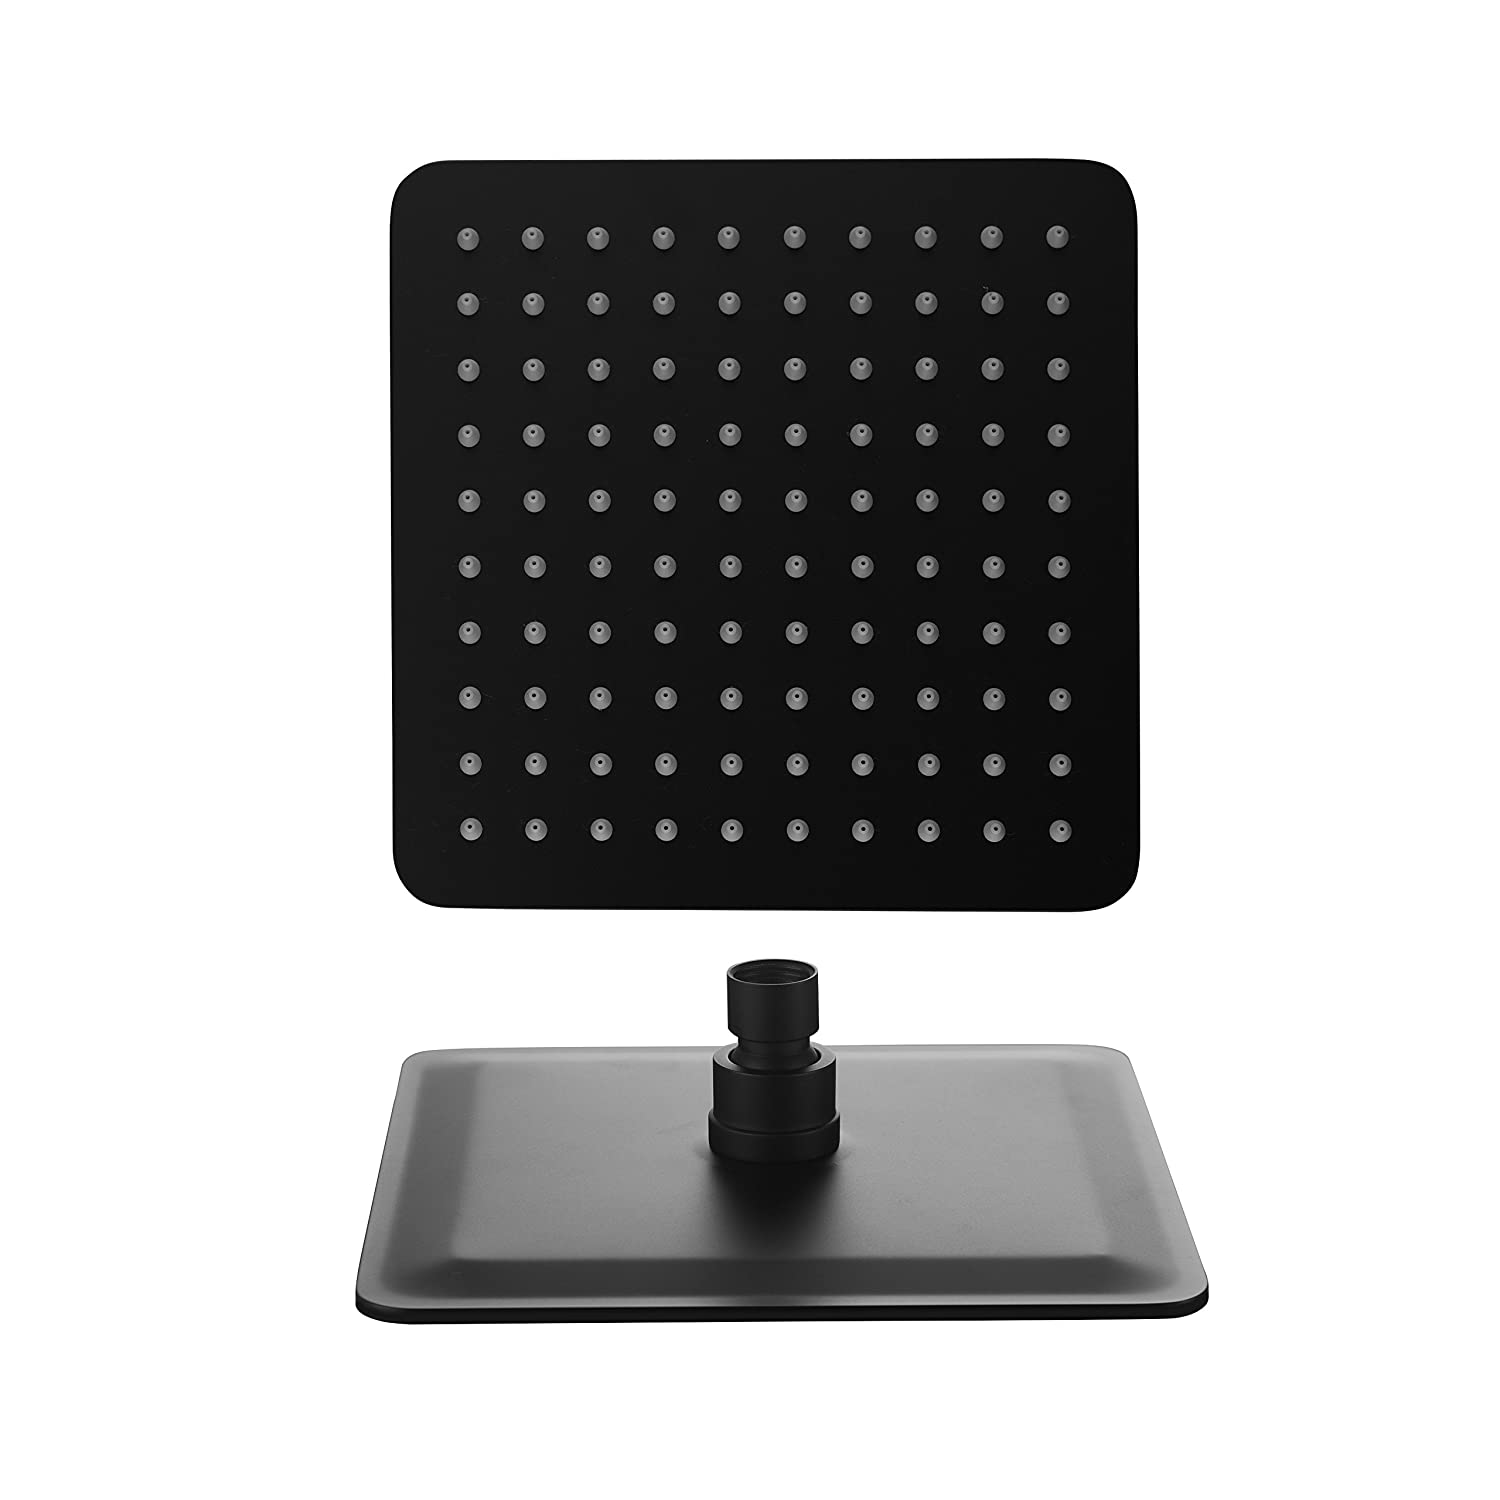 Ownace 8-inch Rainfall Shower Head Square Fixed Wall Mount Solid Stainless Steel Black Color